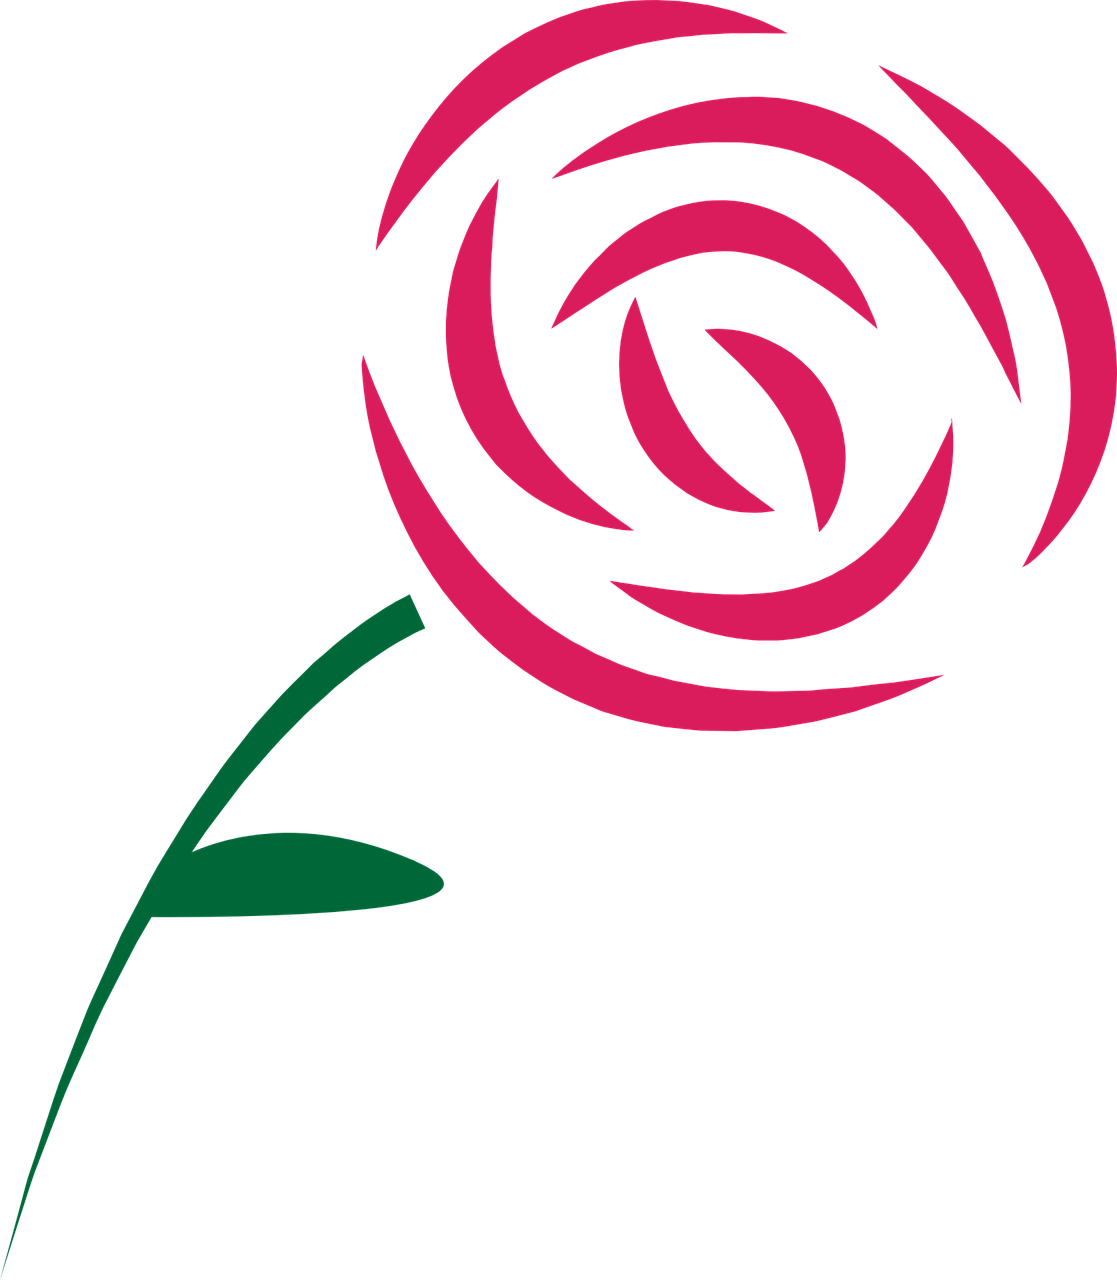 How draw a simple rose: 11 very simple examples